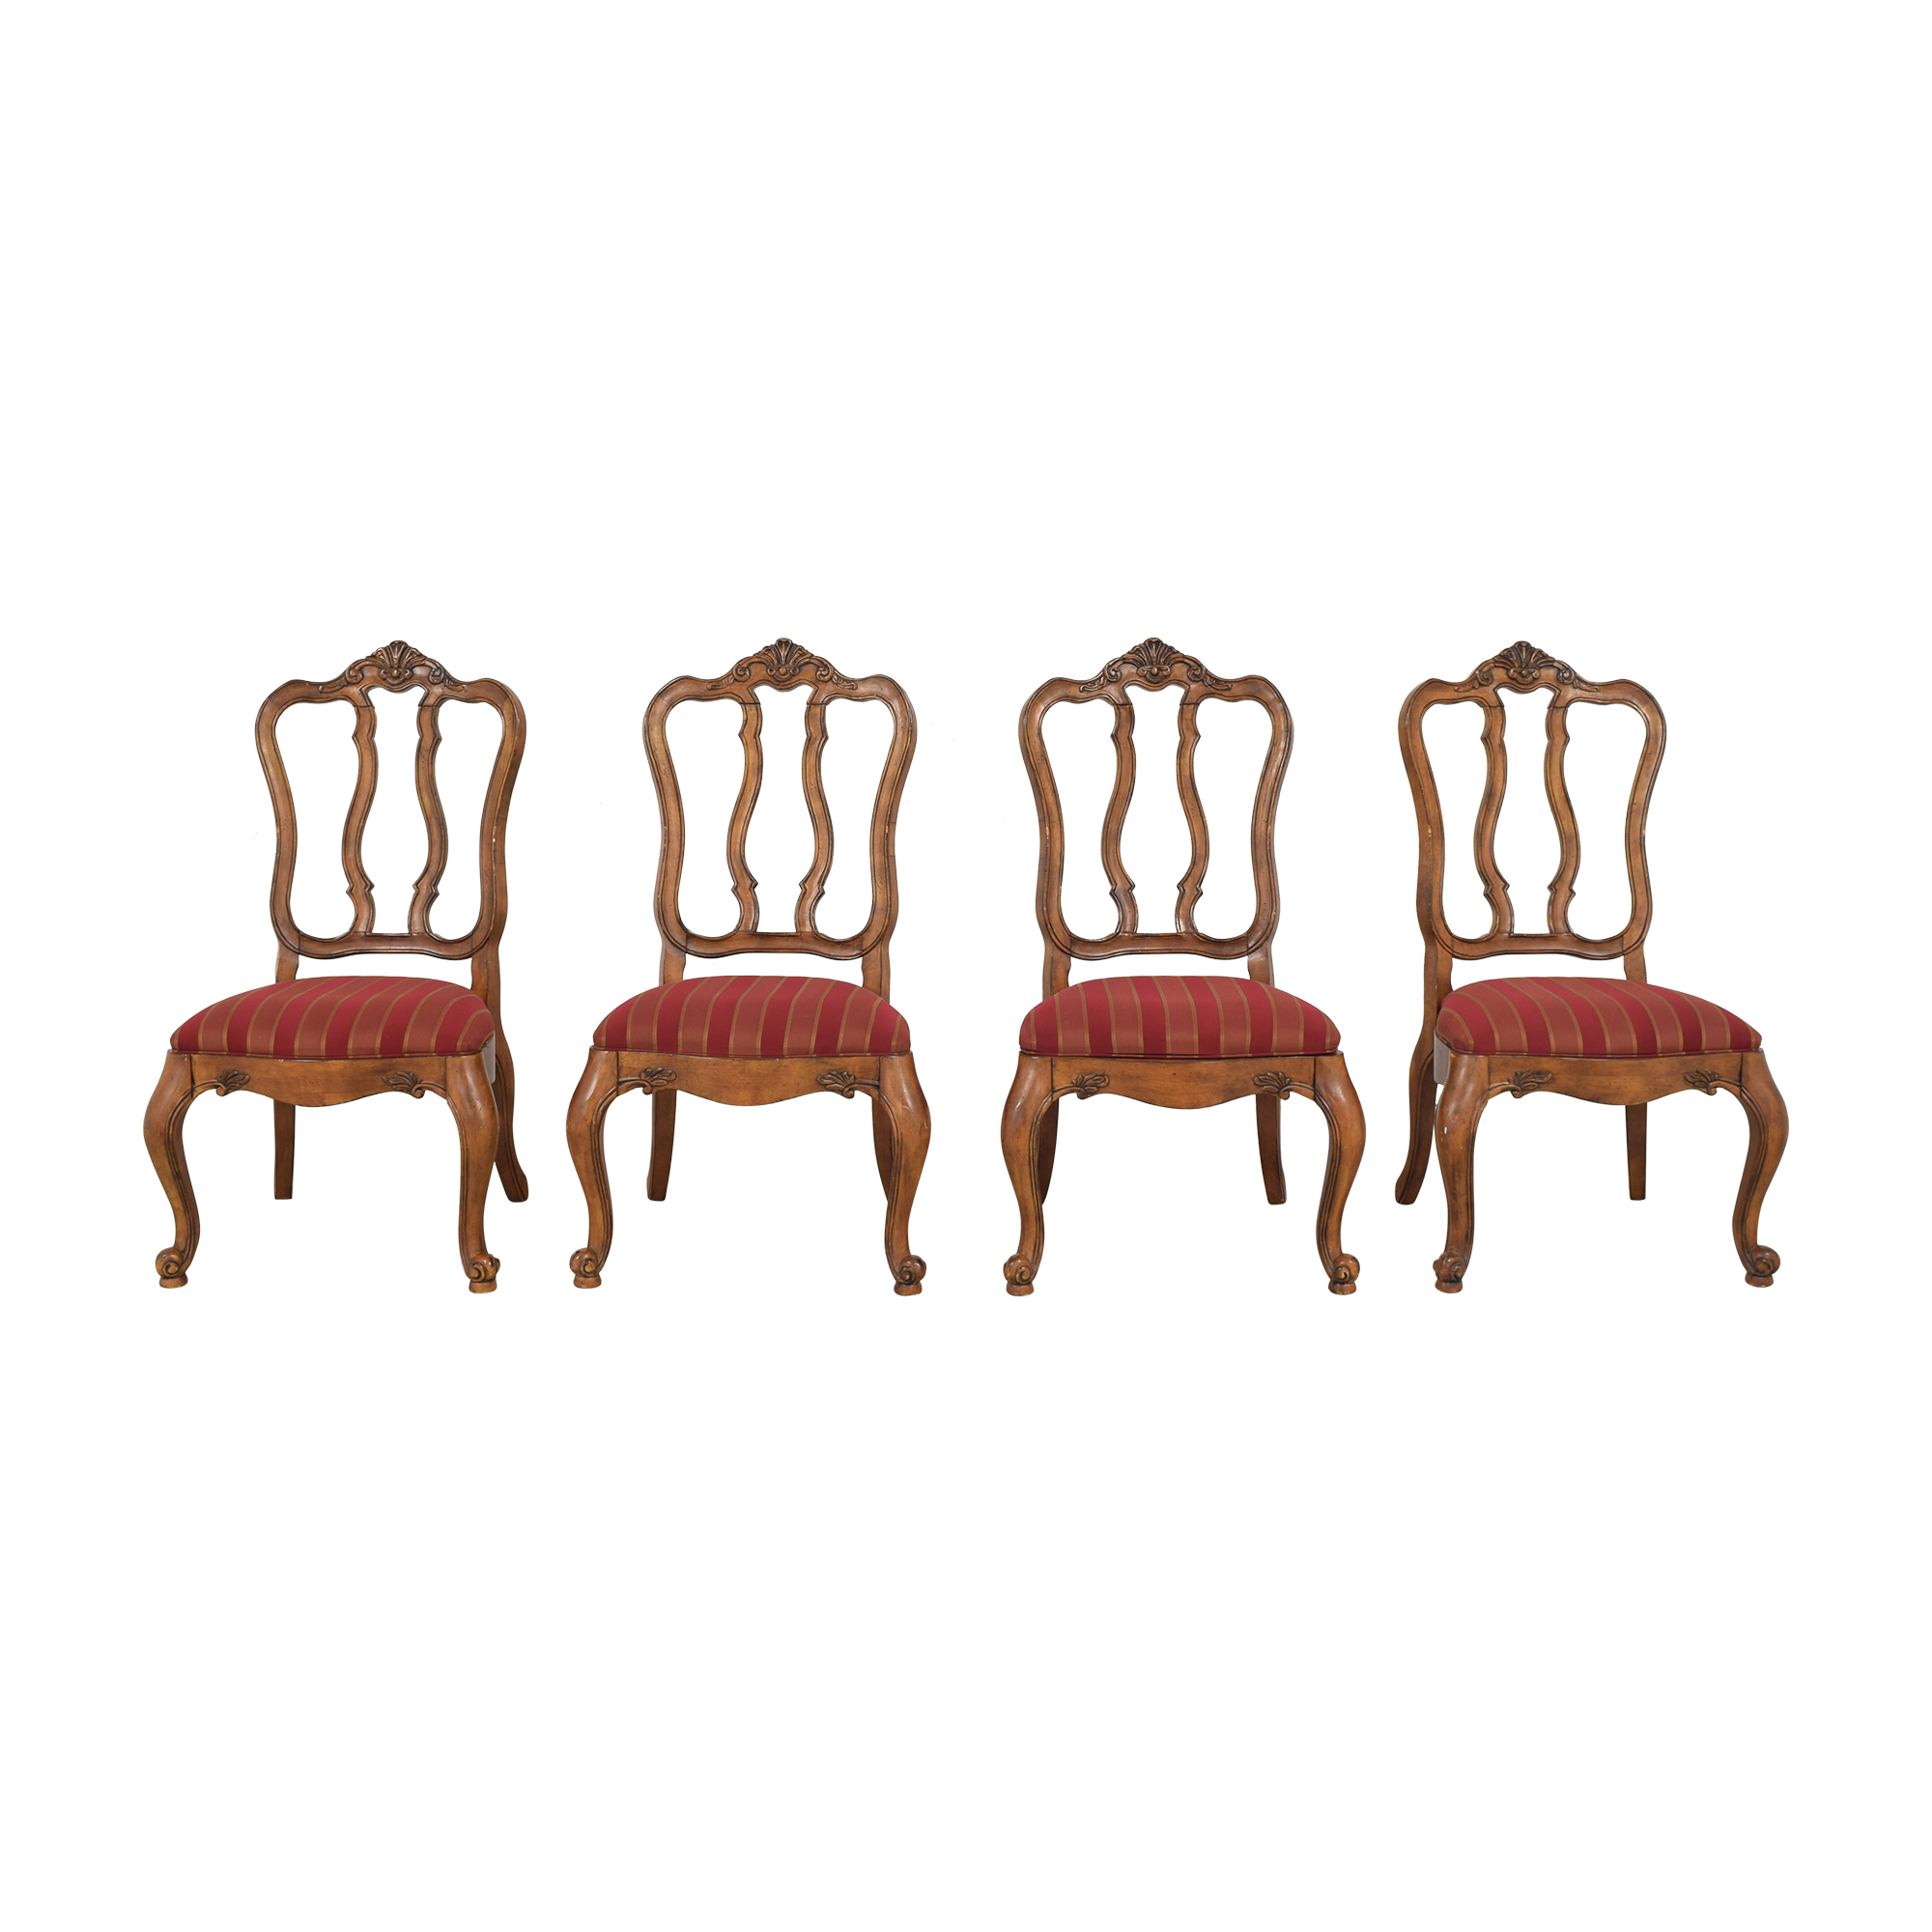 Ethan Allen Ethan Allen Tuscany Augustine Dining Chairs